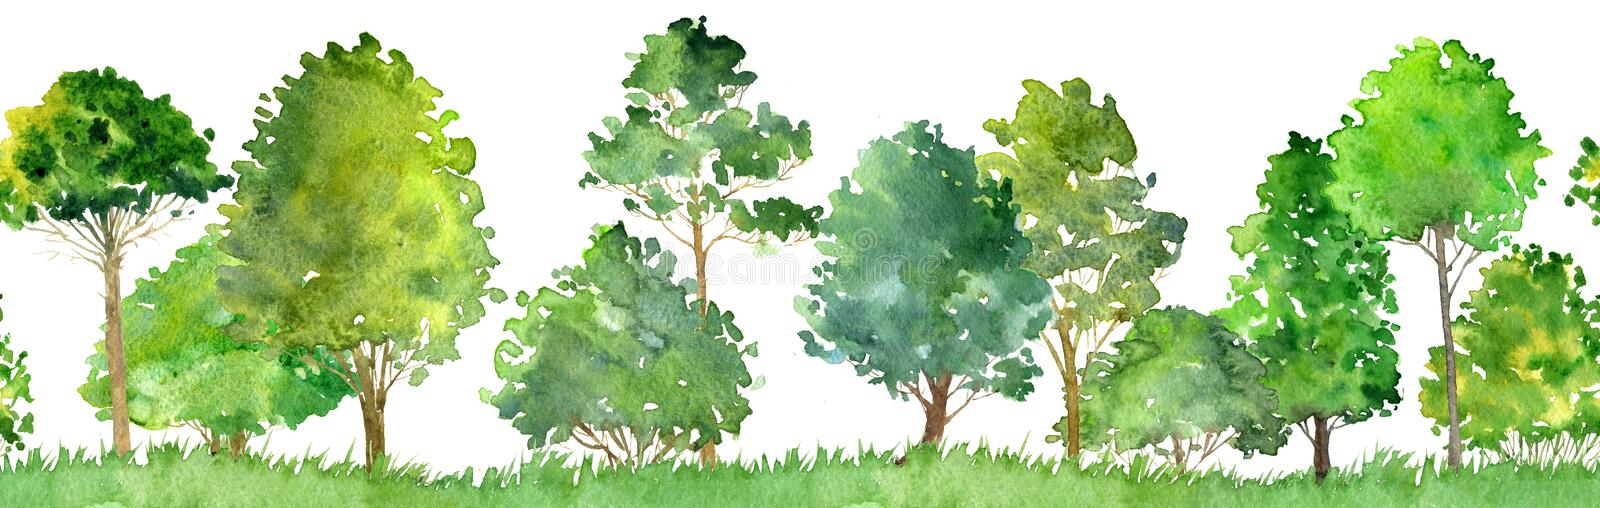 Seamless watercolor landscape with trees vector illustration